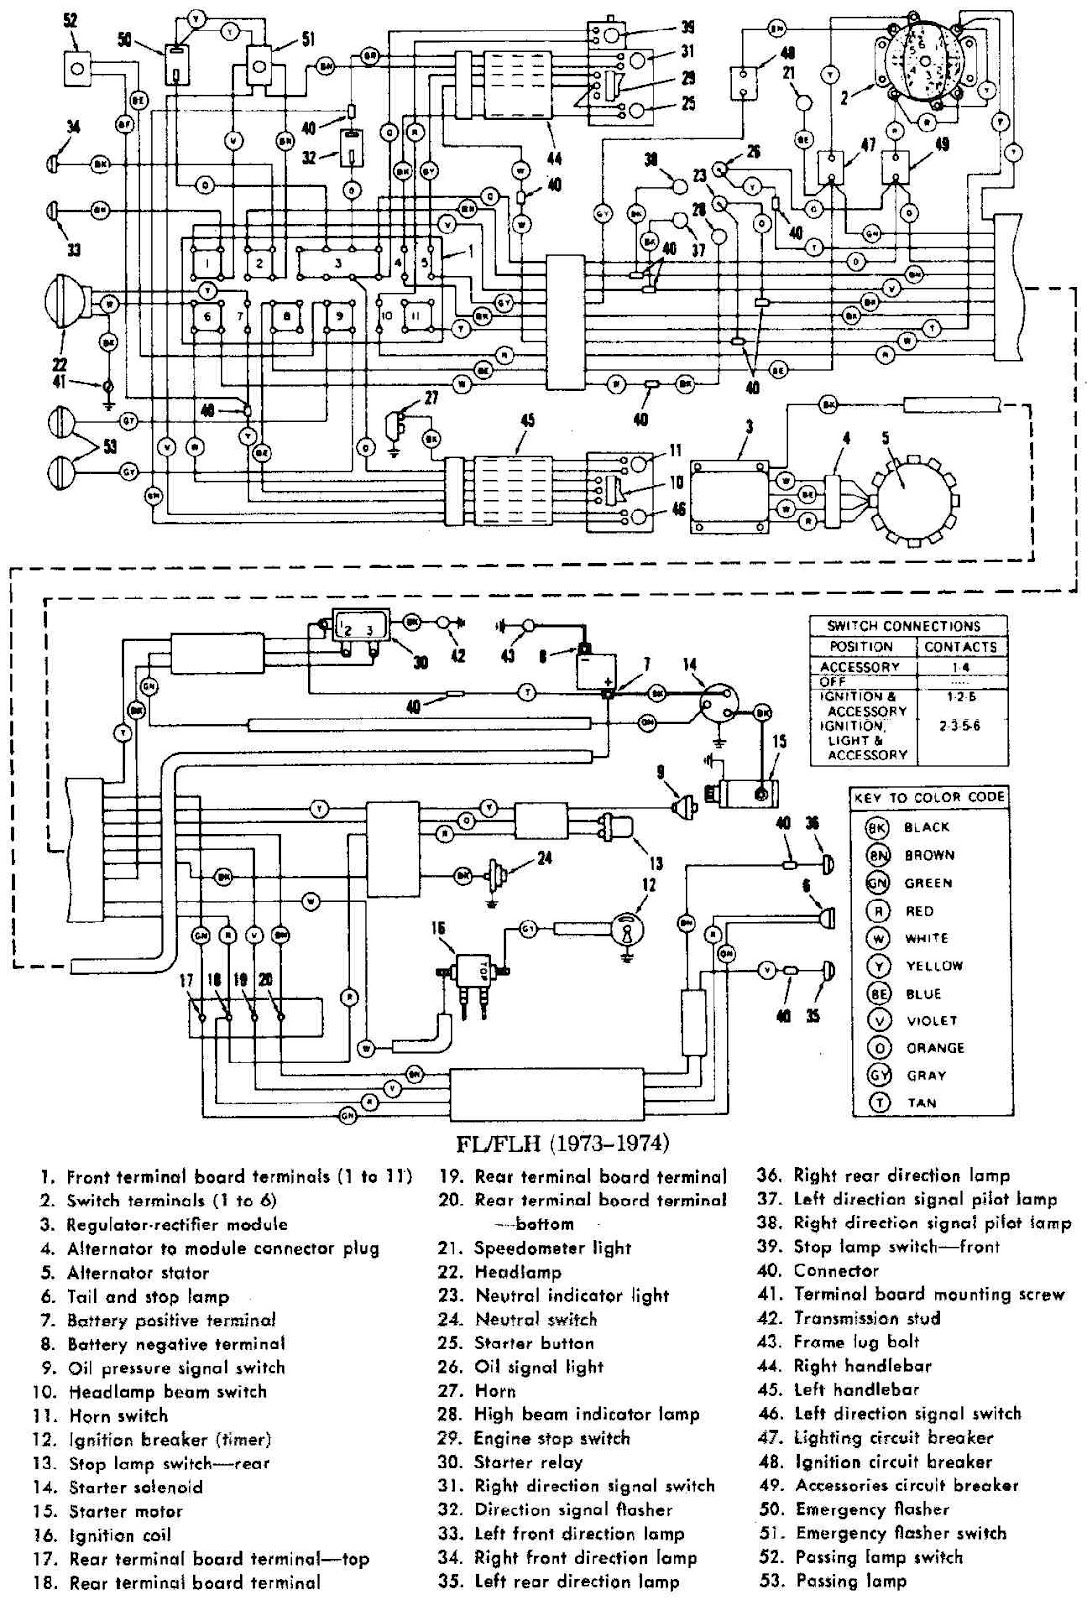 rear tail light wiring diagram 1979 ford #11 License Plate Light Wiring Diagram rear tail light wiring diagram 1979 ford